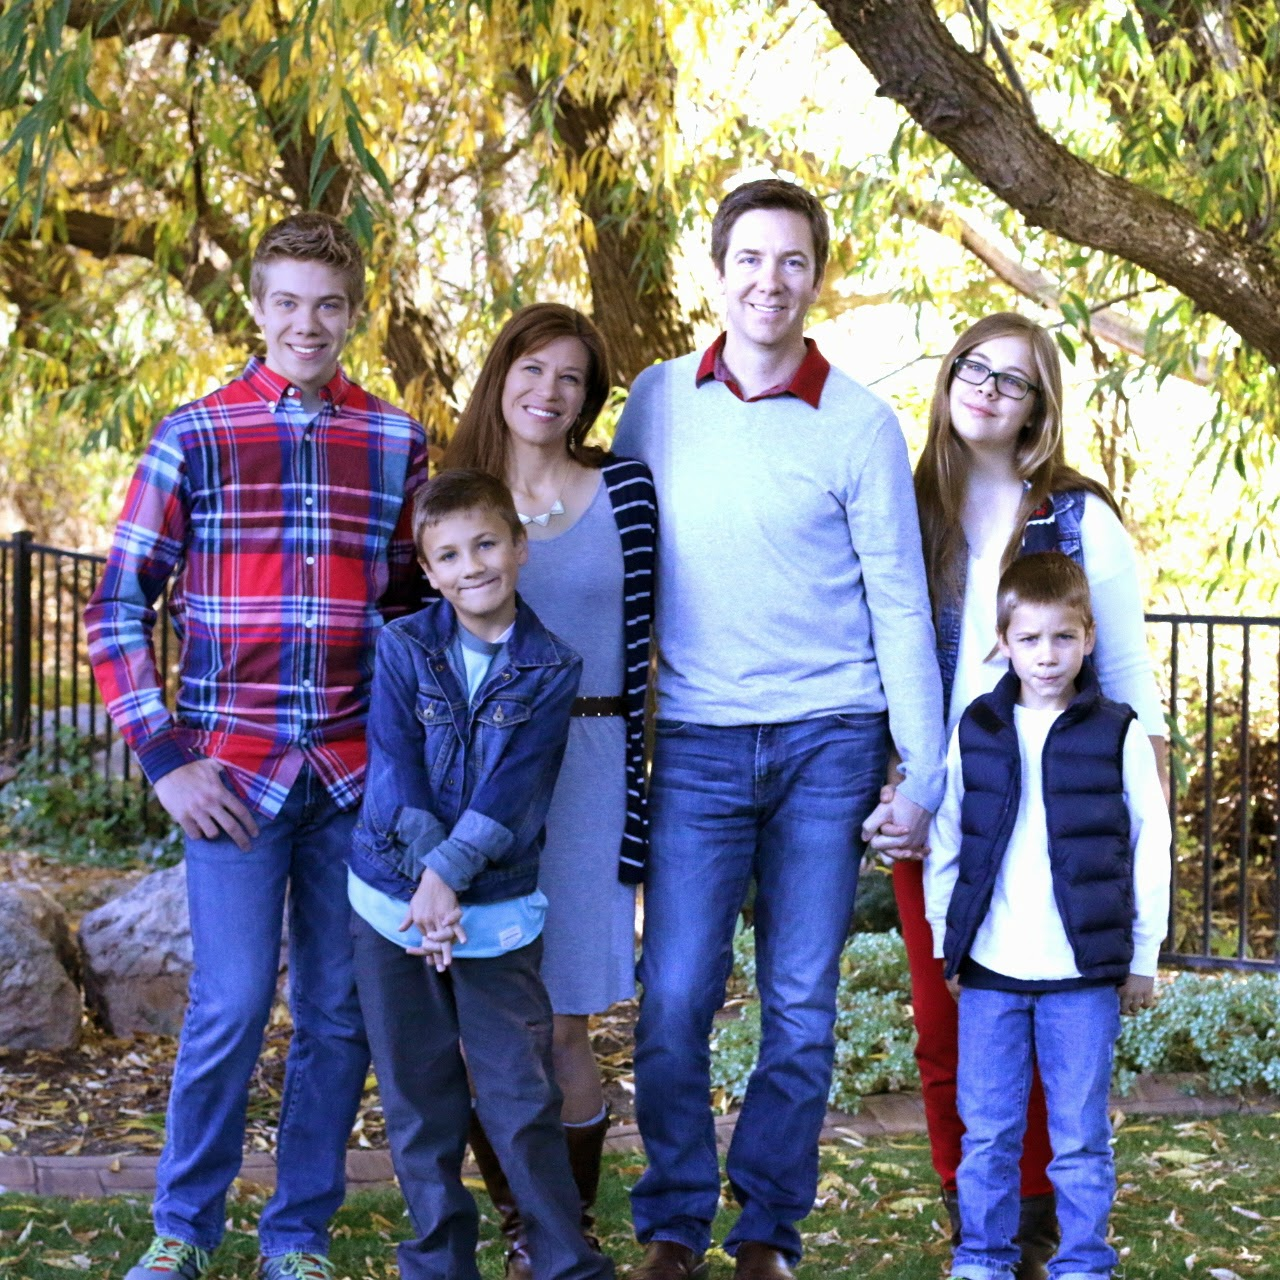 My Family - One Month Before My Diagnosis